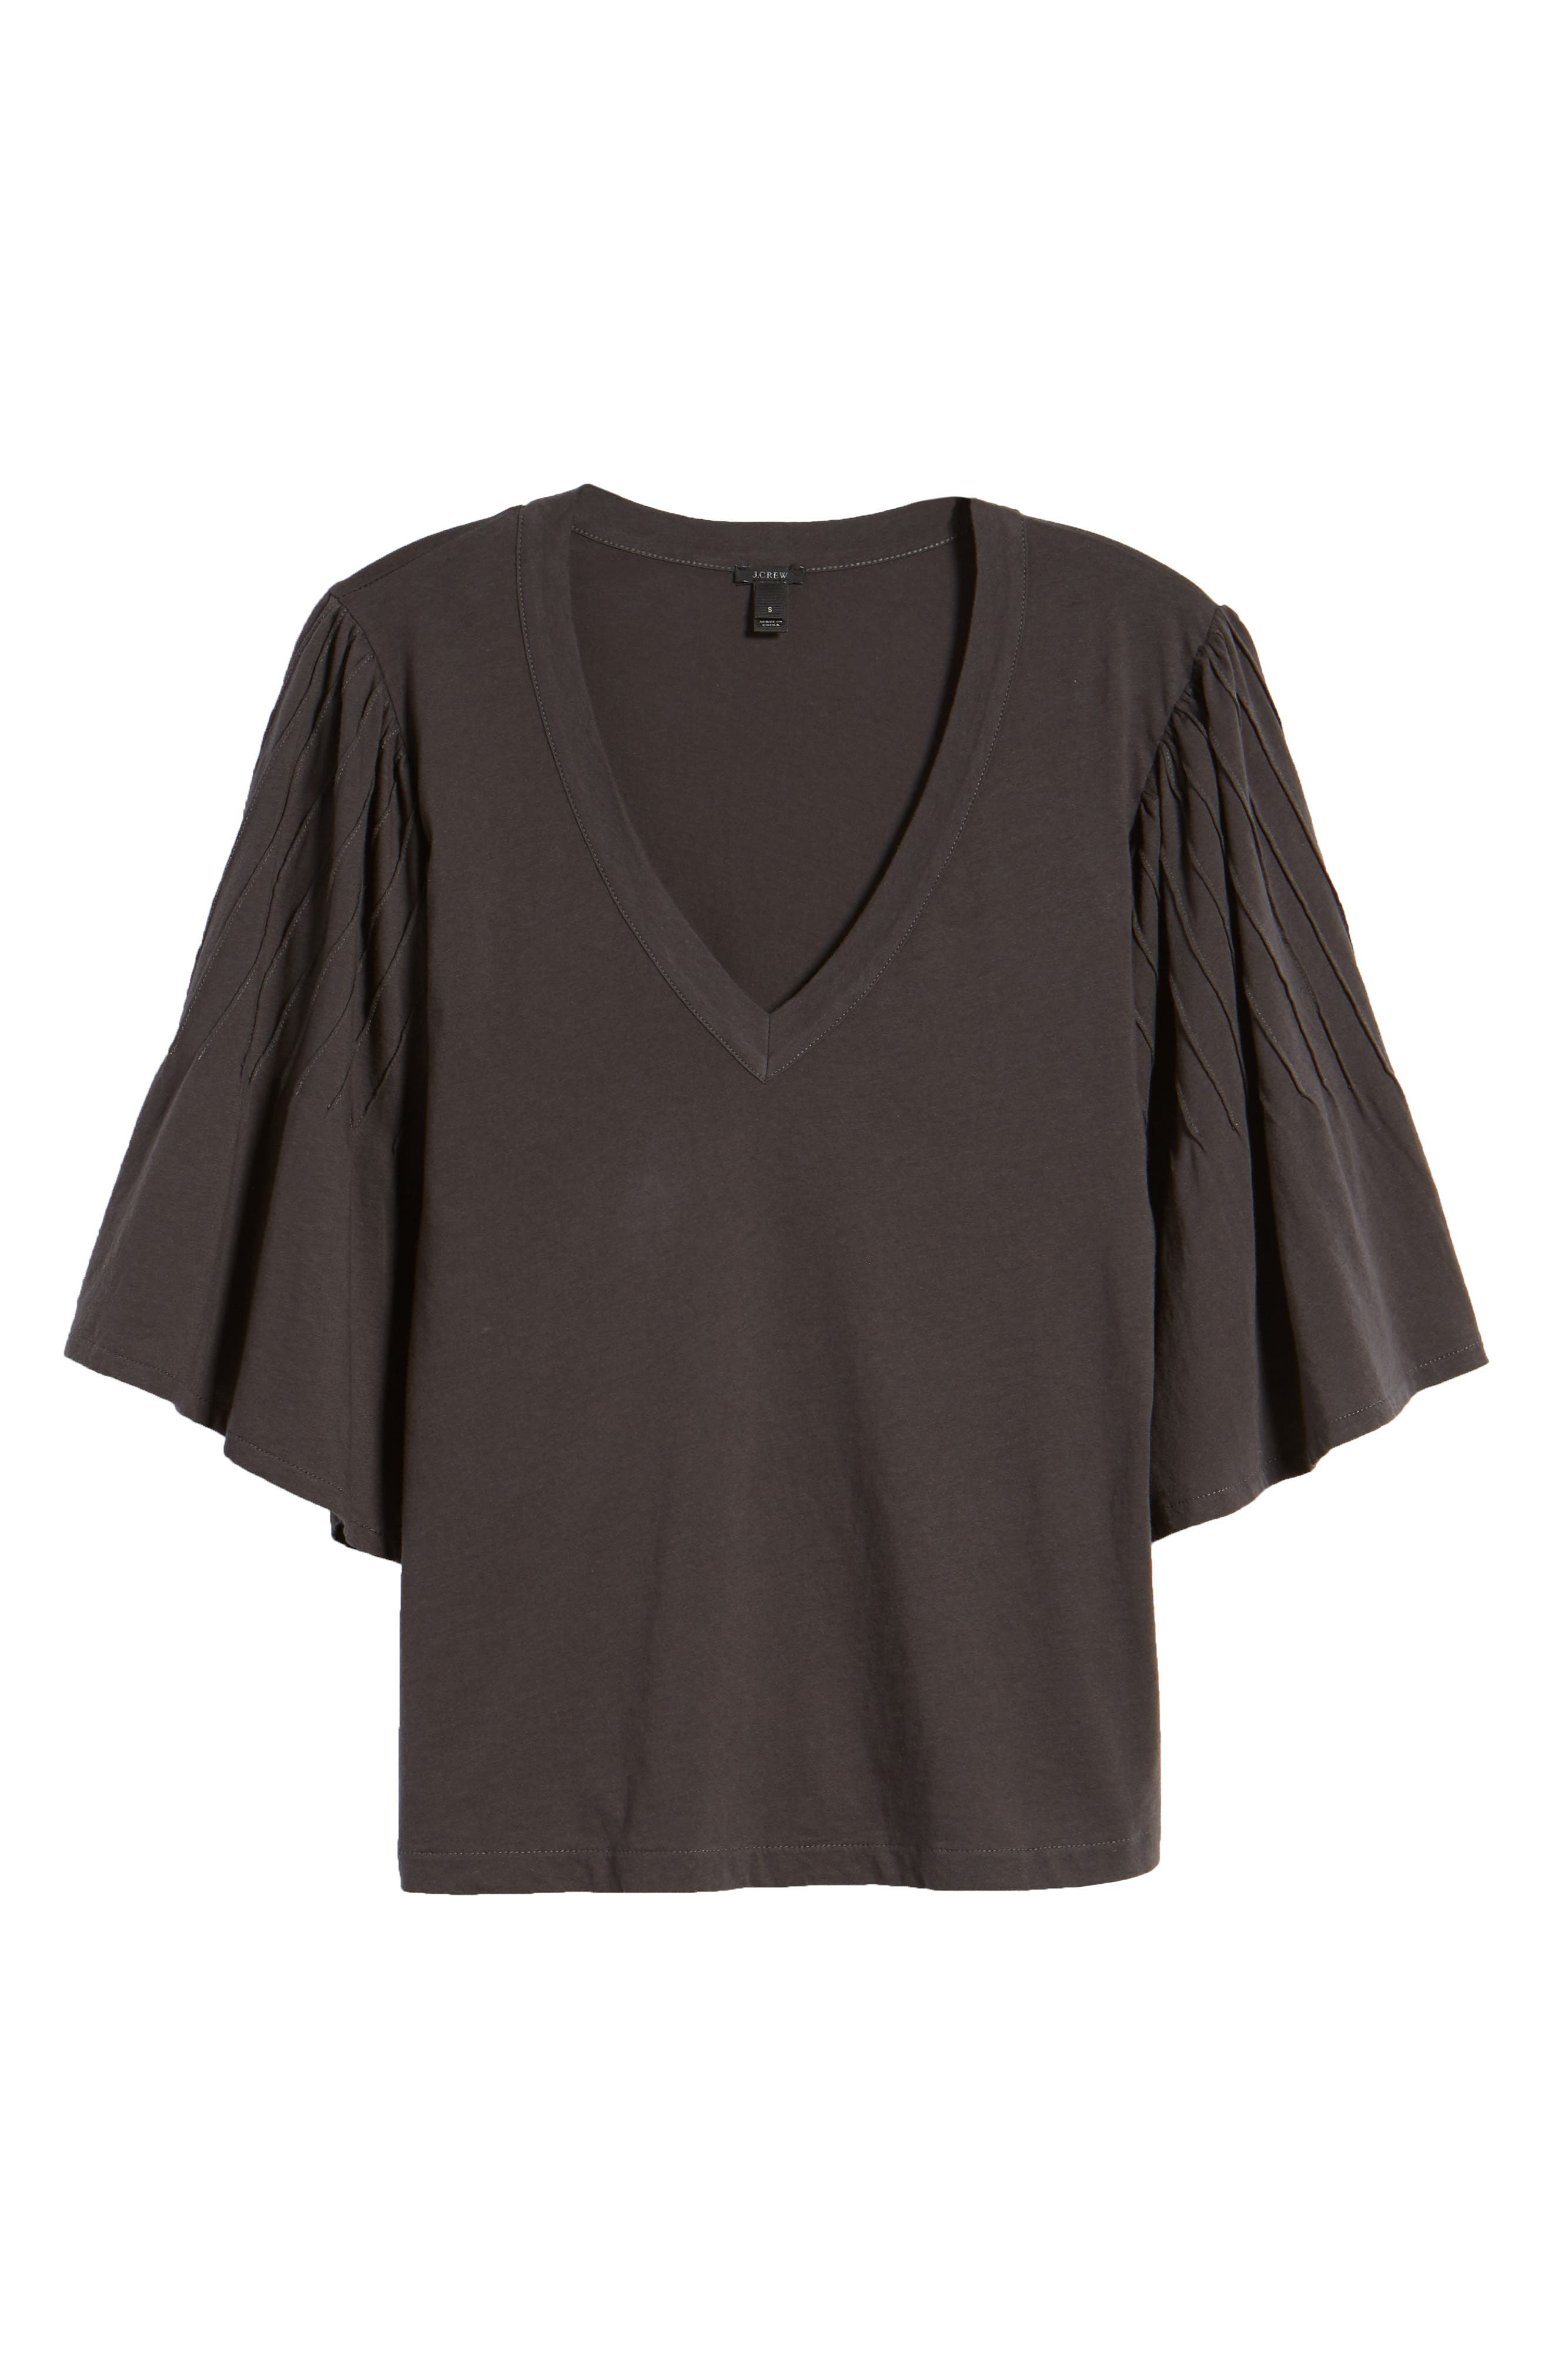 Pintuck Sleeve Cotton Blouse,                             Alternate thumbnail 7, color,                             010